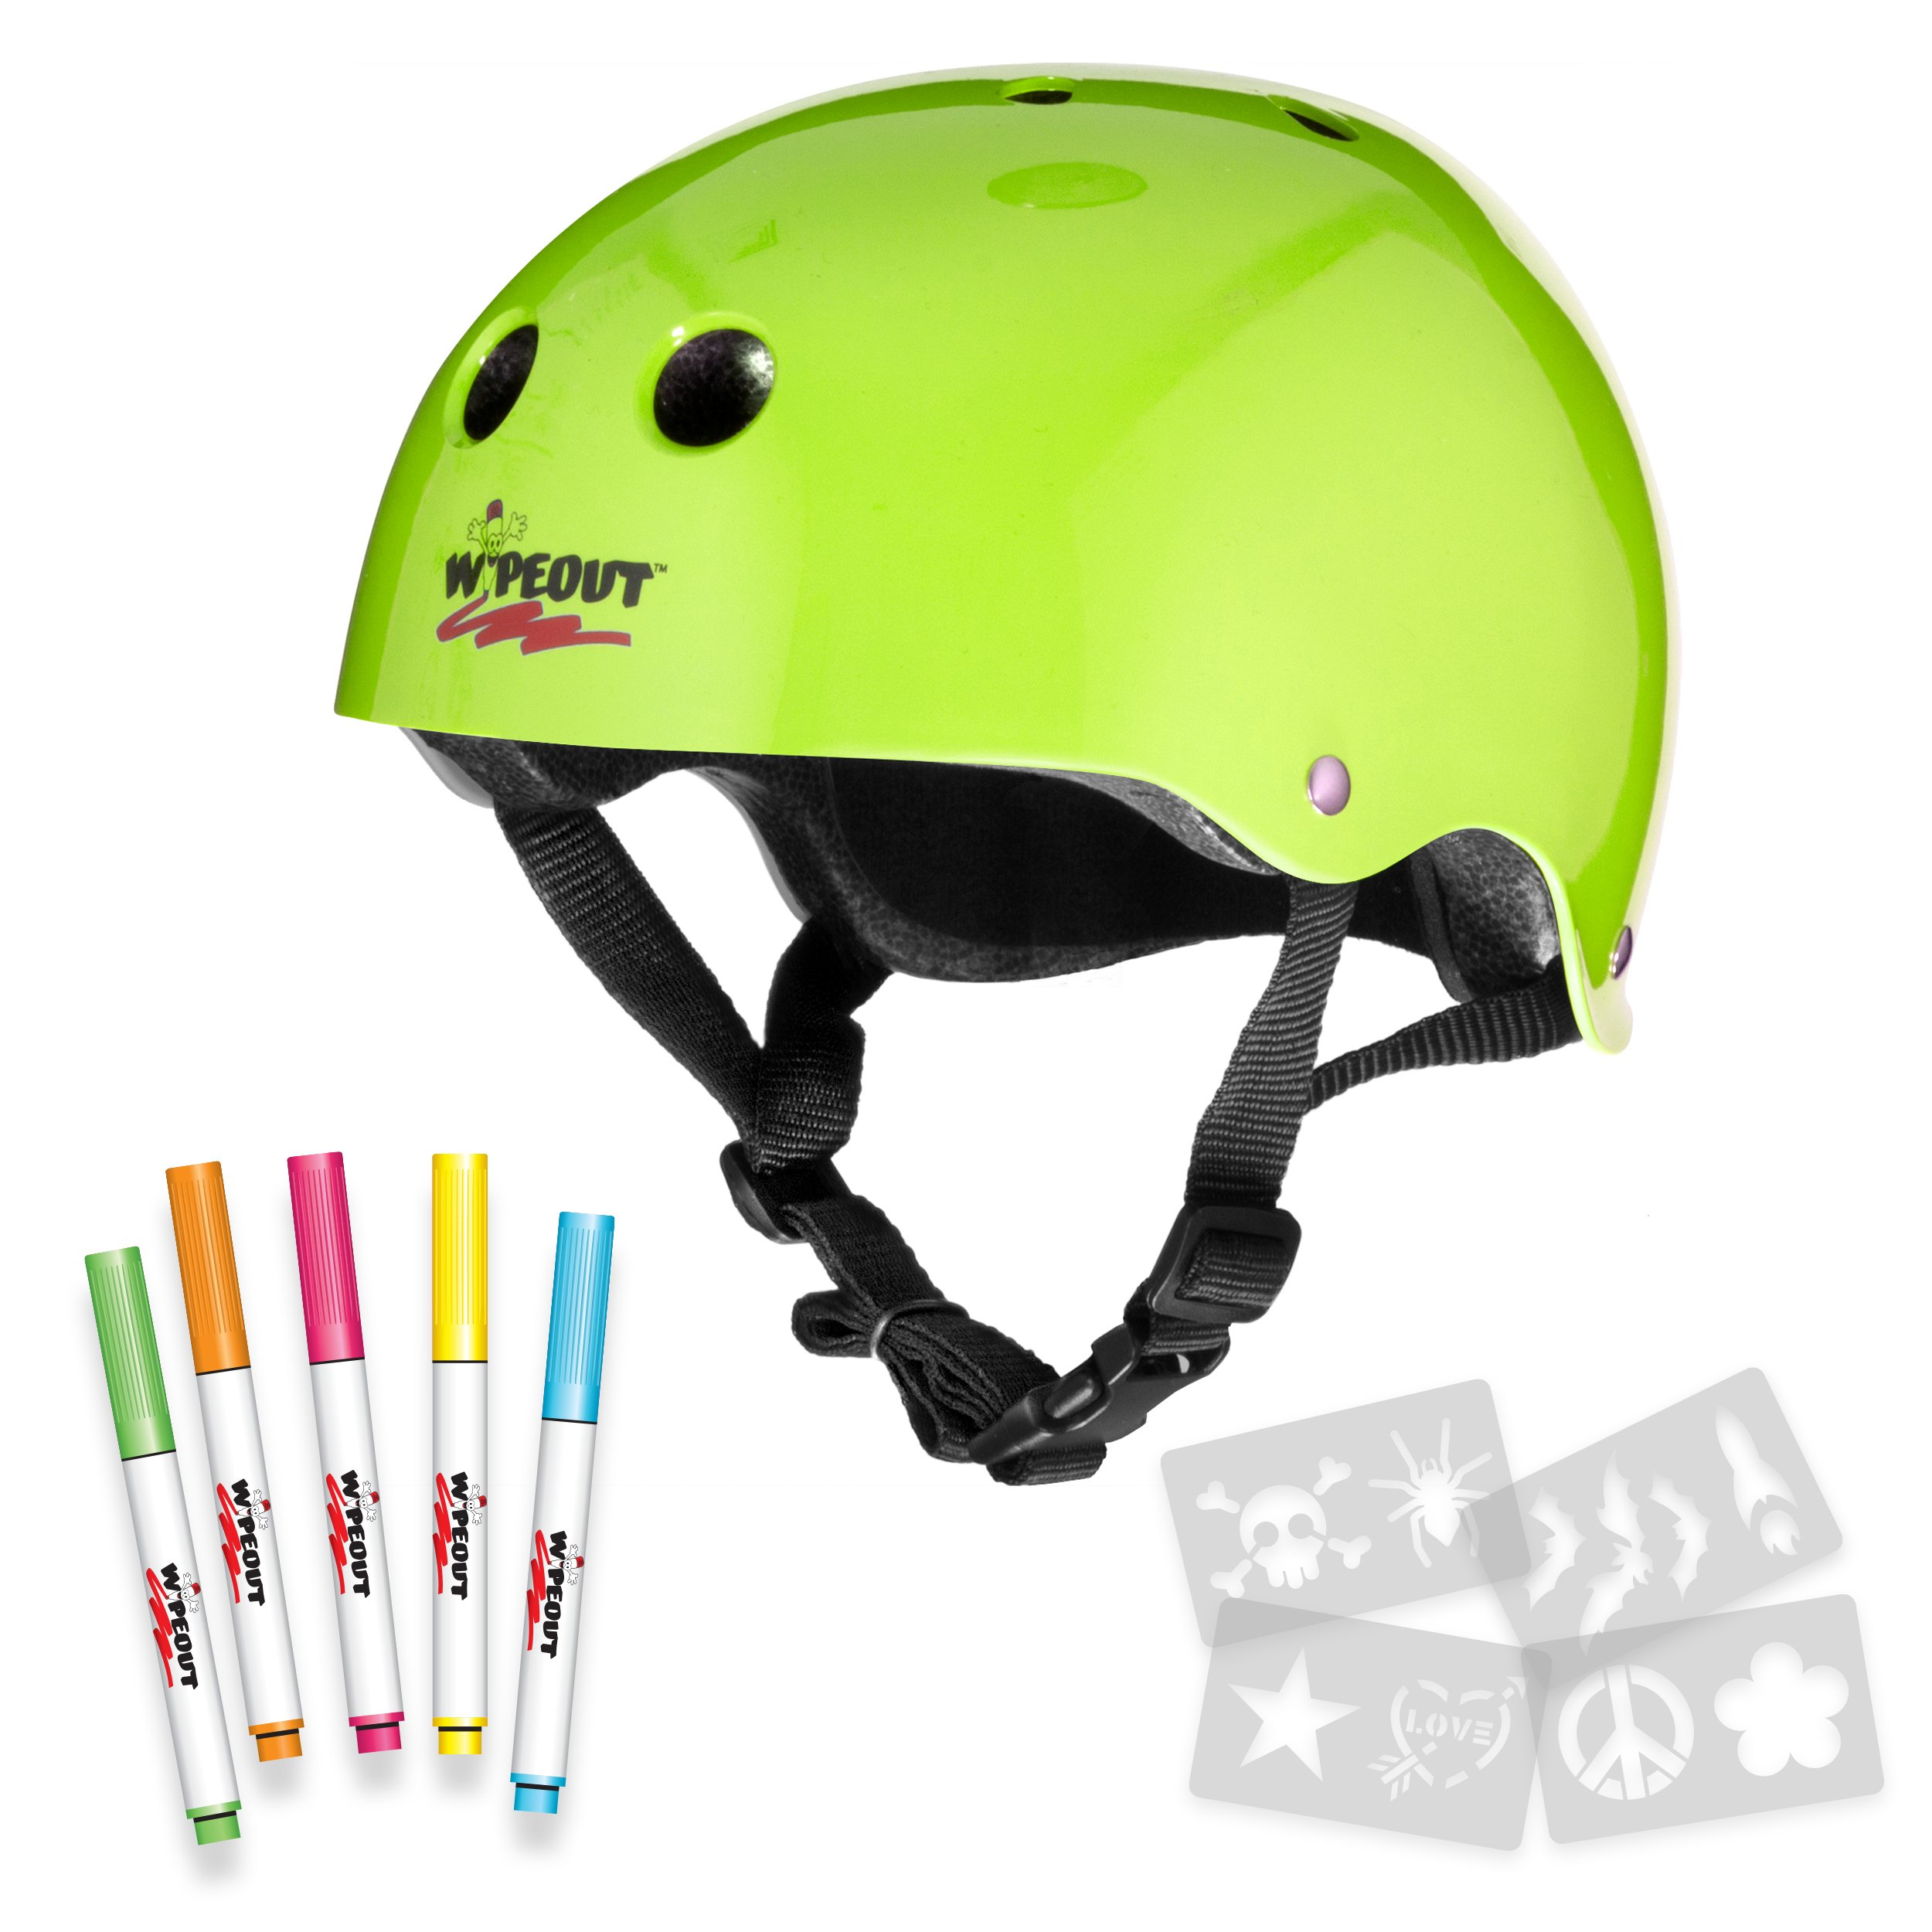 Wipeout Dry Erase Kids' Bike, Skate, and Scooter Helmet, Neon Zest, Ages 5+